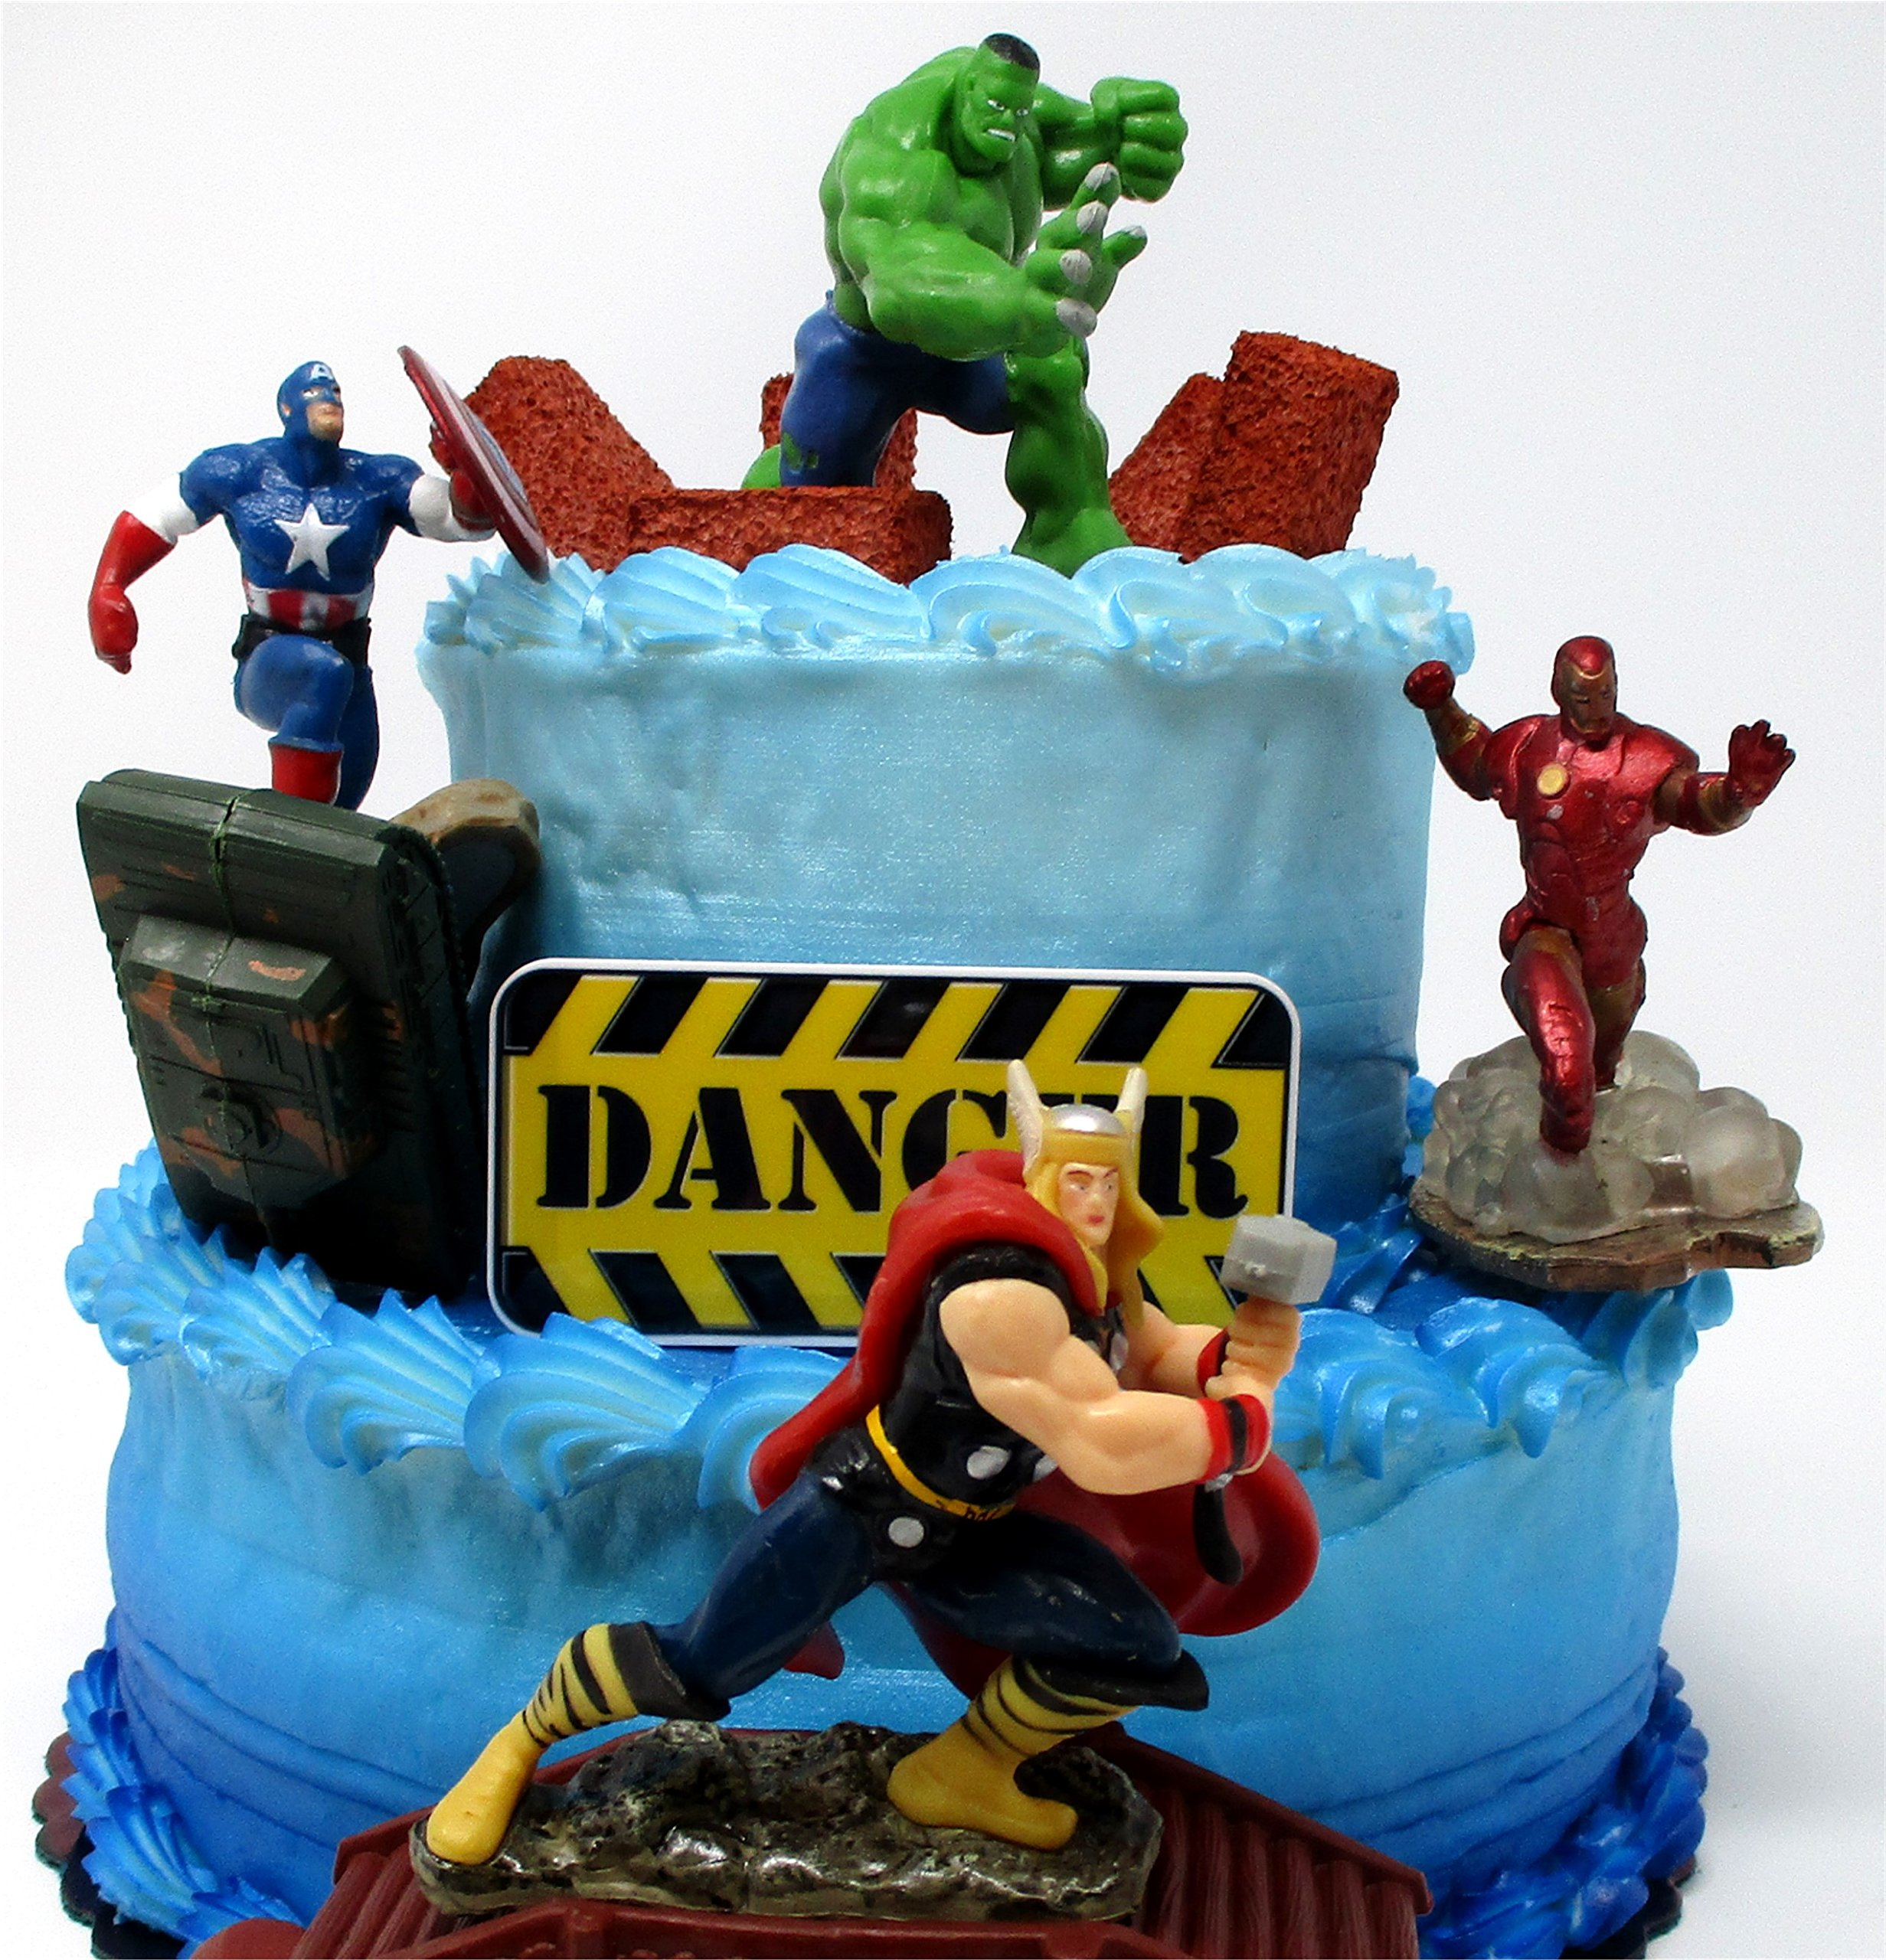 AVENGERS Deluxe Super Hero Birthday Cake Topper Set Featuring Avenger Figures and Decorative Themed Accessories by Cake Toppers (Image #2)